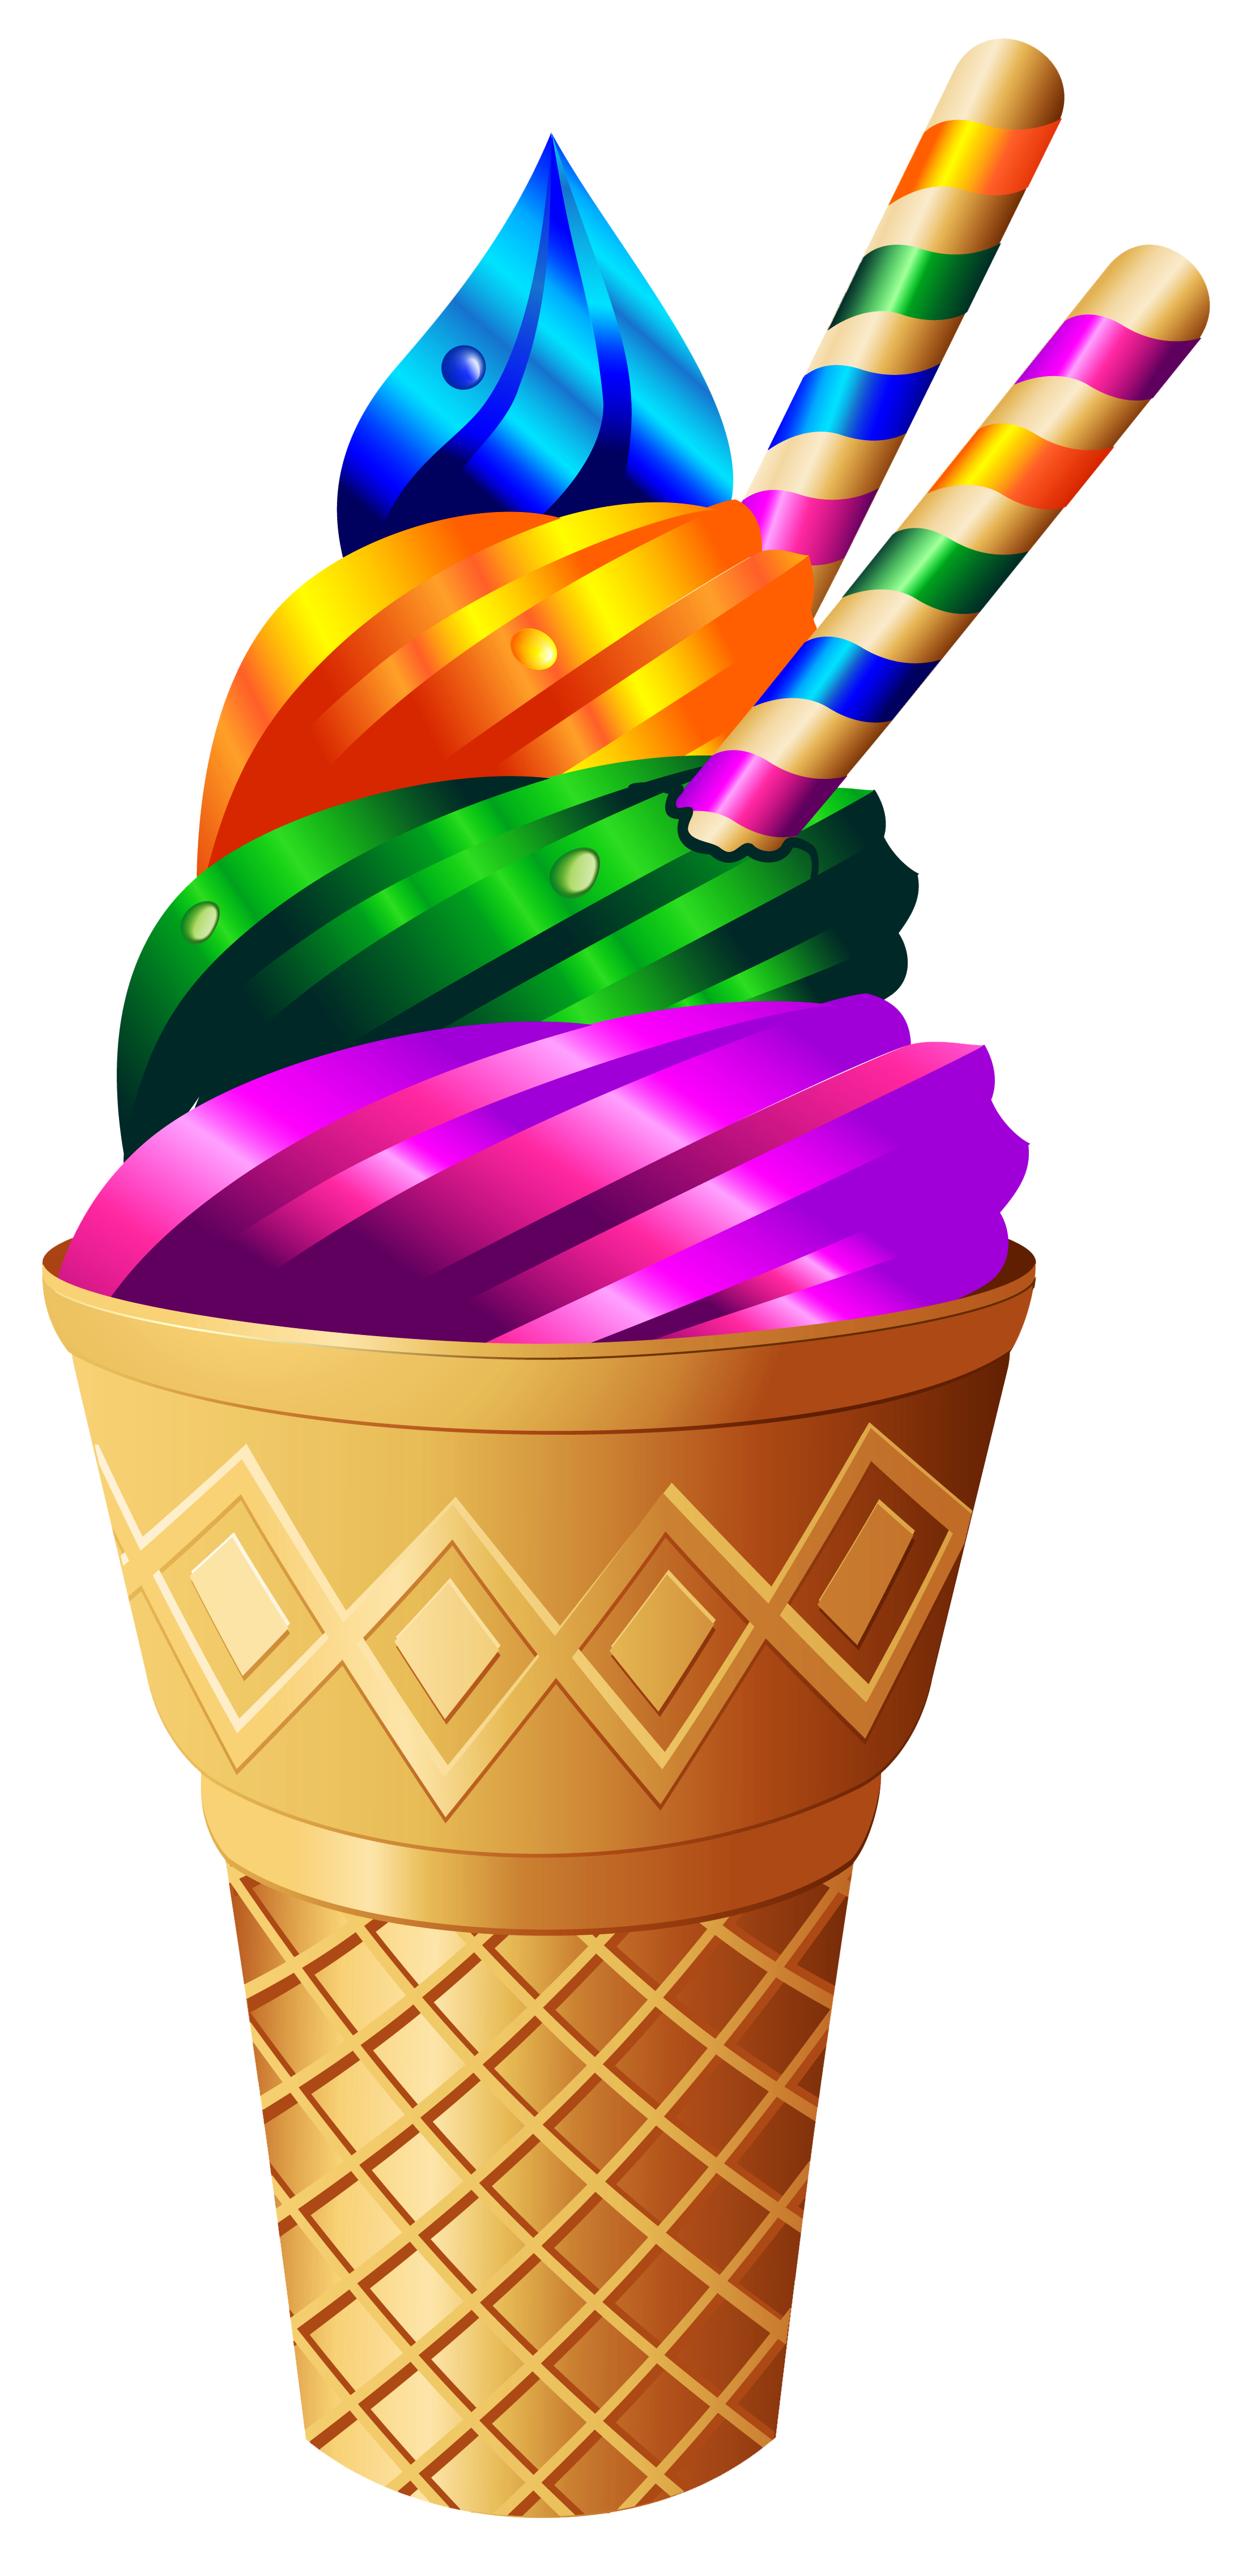 Clipart hearts ice cream. Transparent rainbow png image